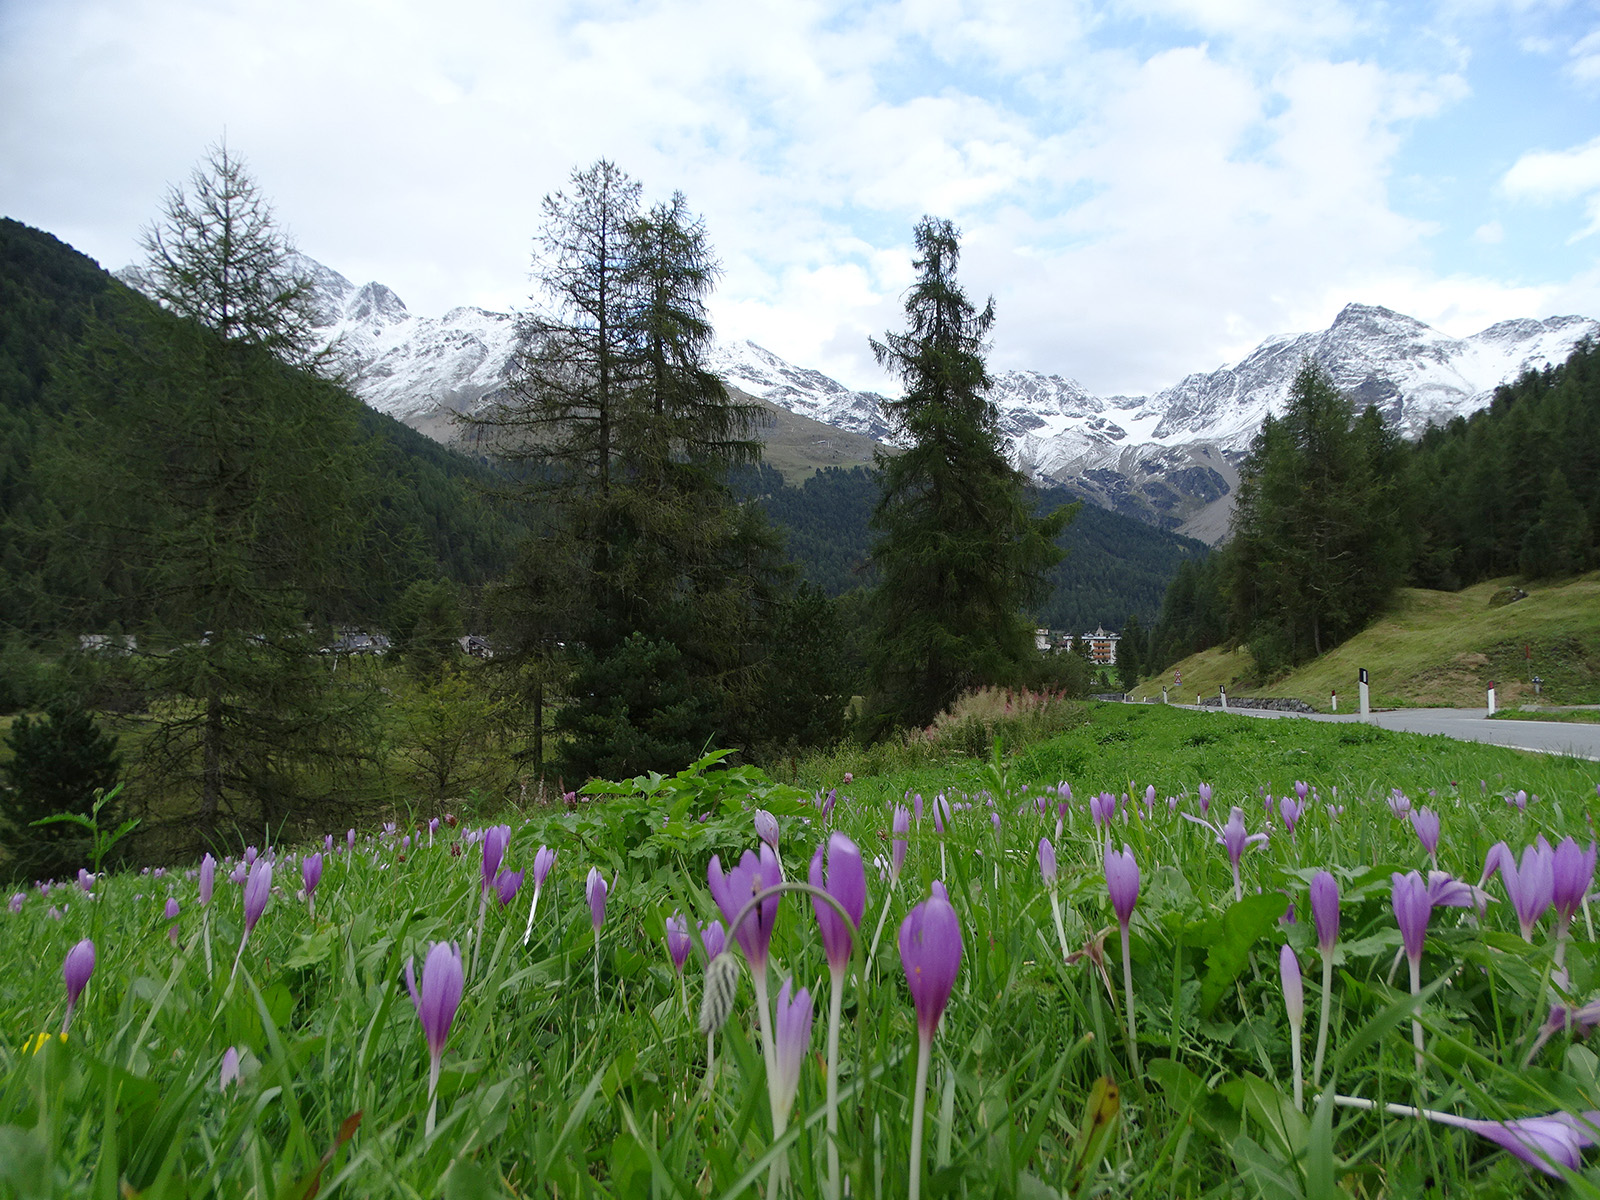 Roadside swath of Colchicum autumnale